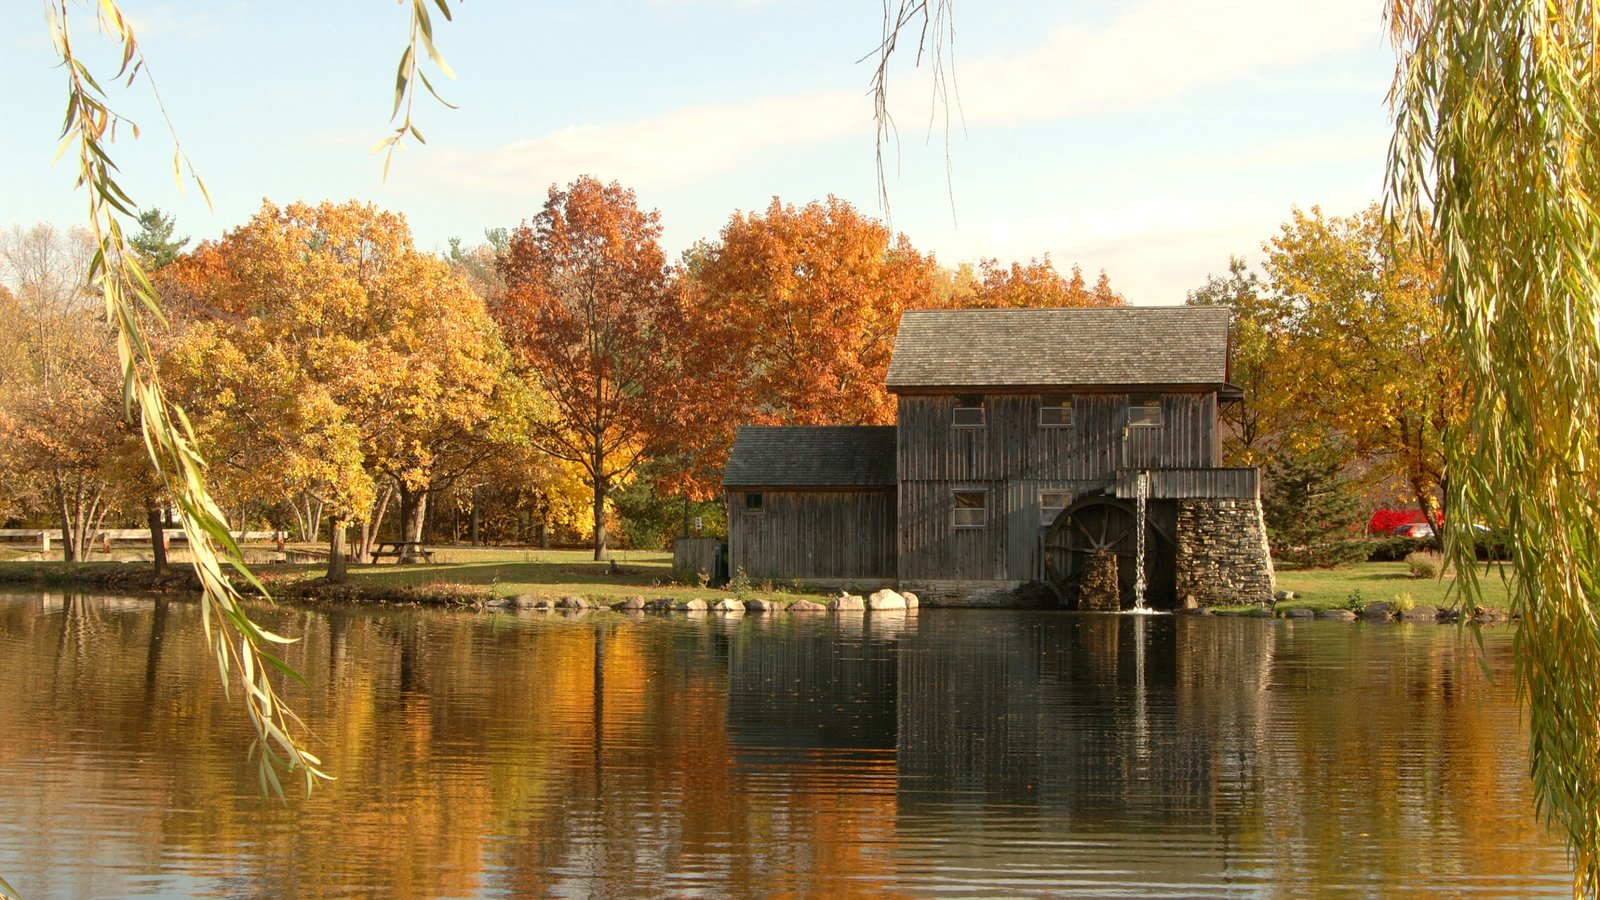 Rockford which includes a house, fall colors and a lake or waterhole